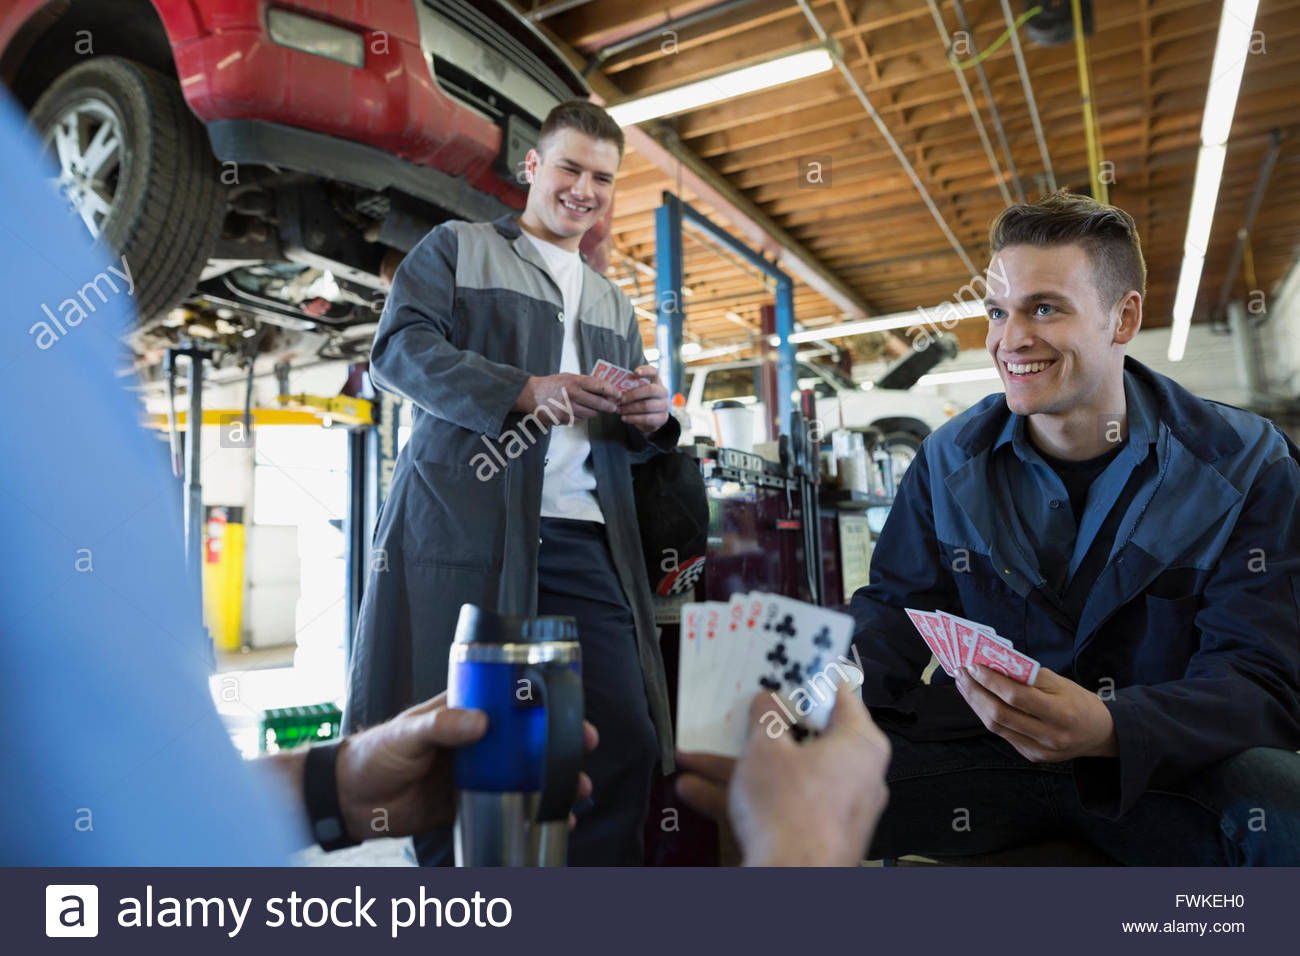 Mechanics playing cards in auto repair shop - Stock Image